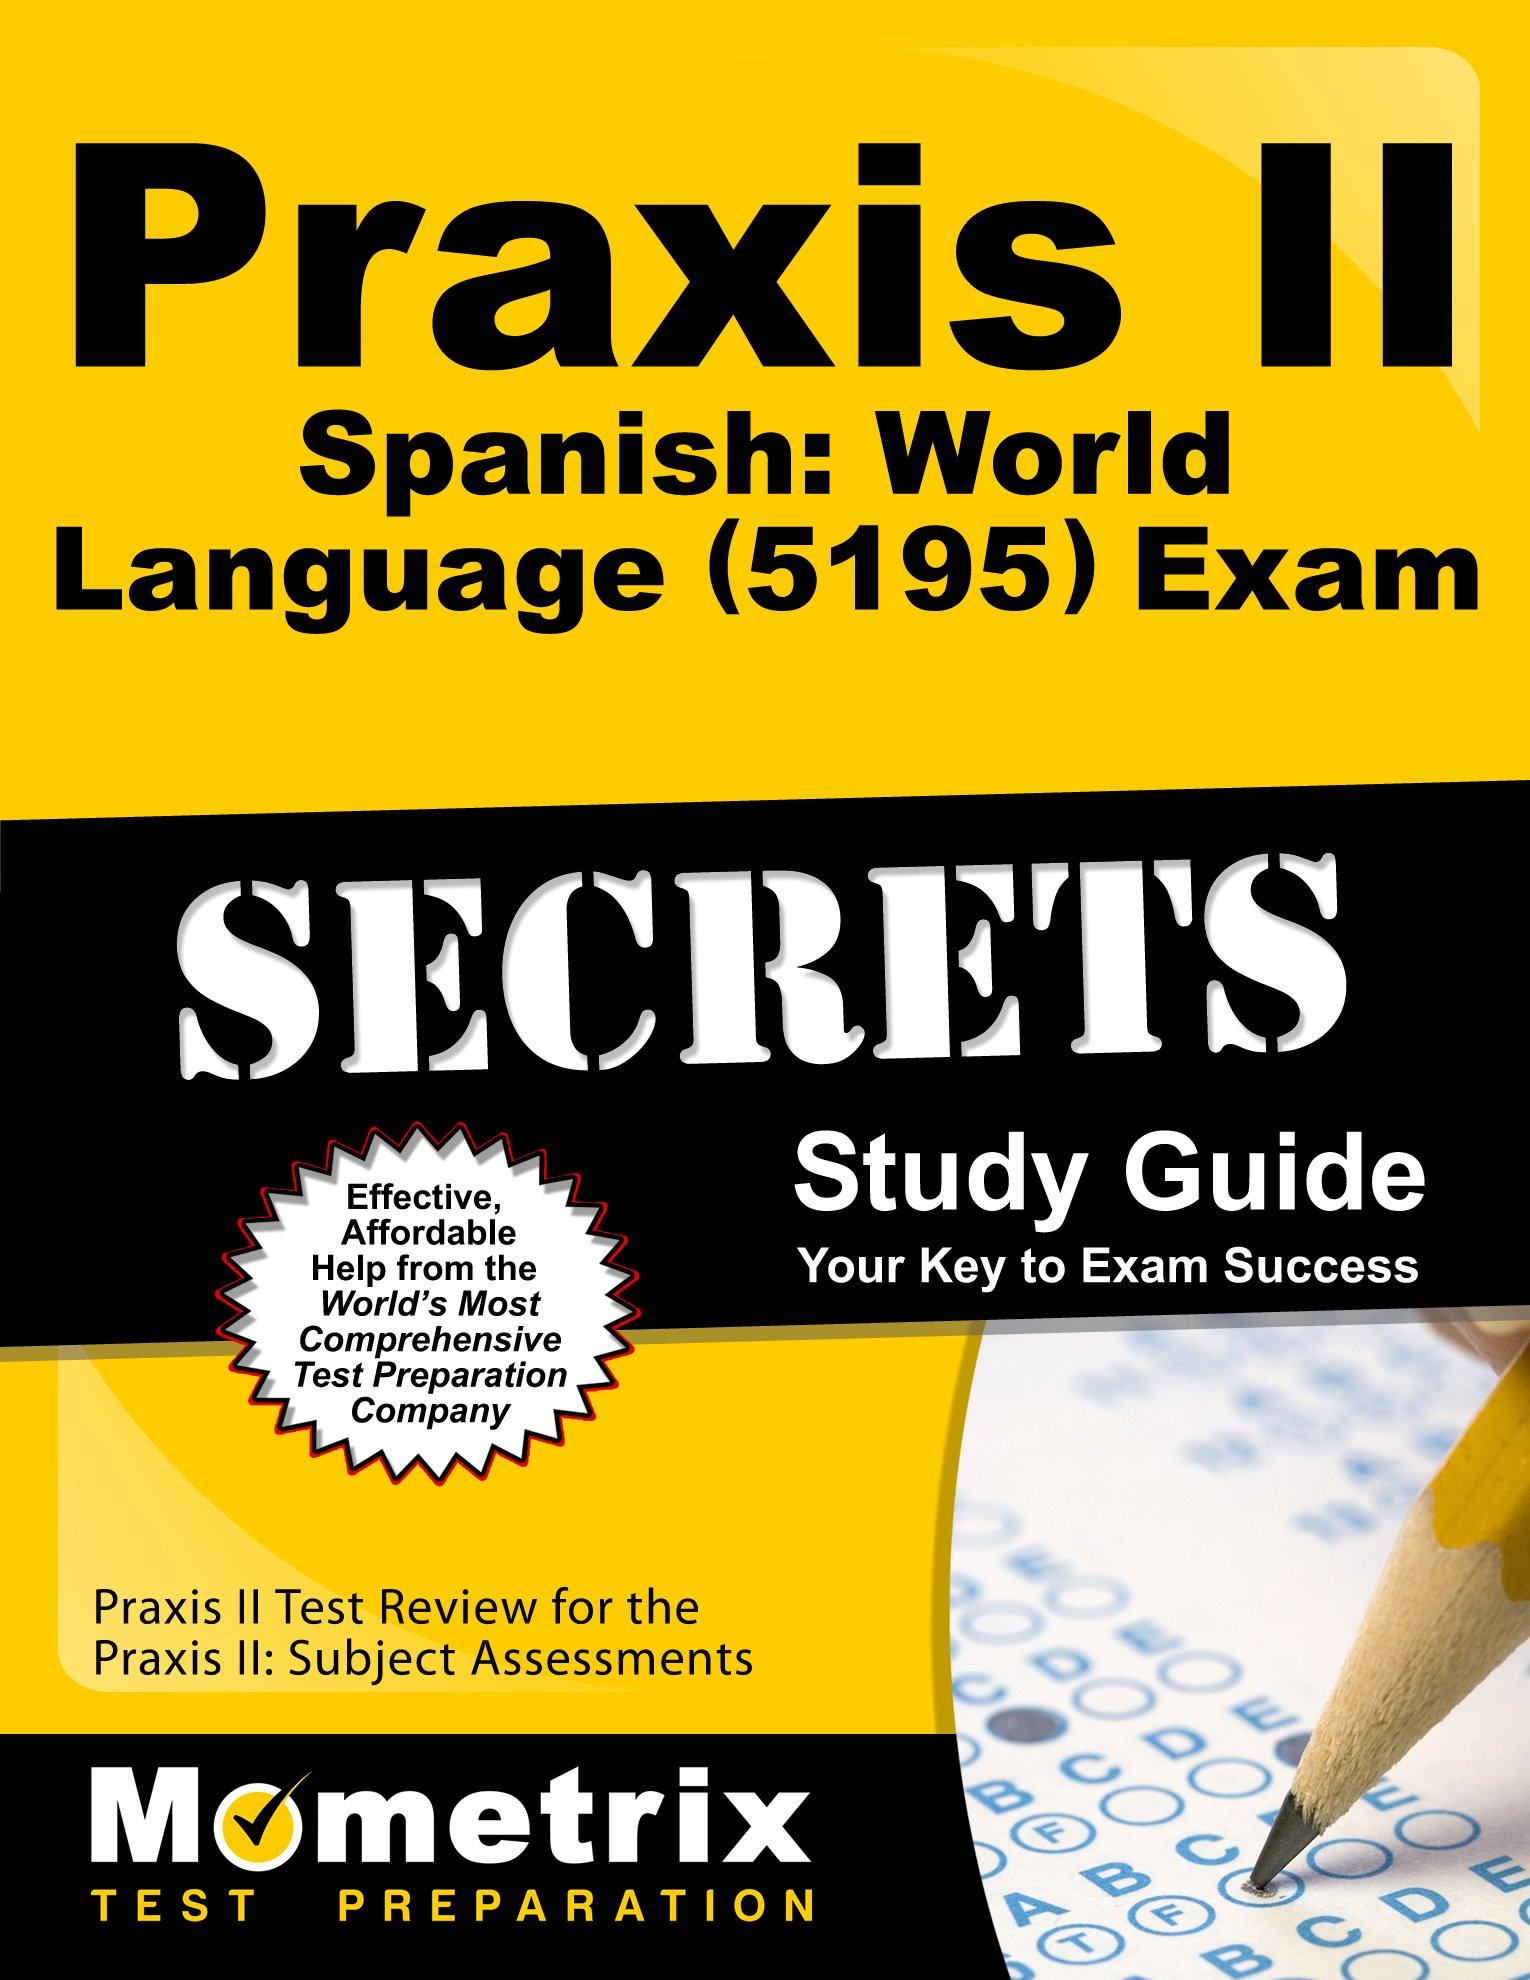 Praxis II Spanish: World Language (5195) Exam Secrets Study Guide: Praxis II Test Review for the Praxis II: Subject Assessments (English and Spanish Edition) by Mometrix Media LLC